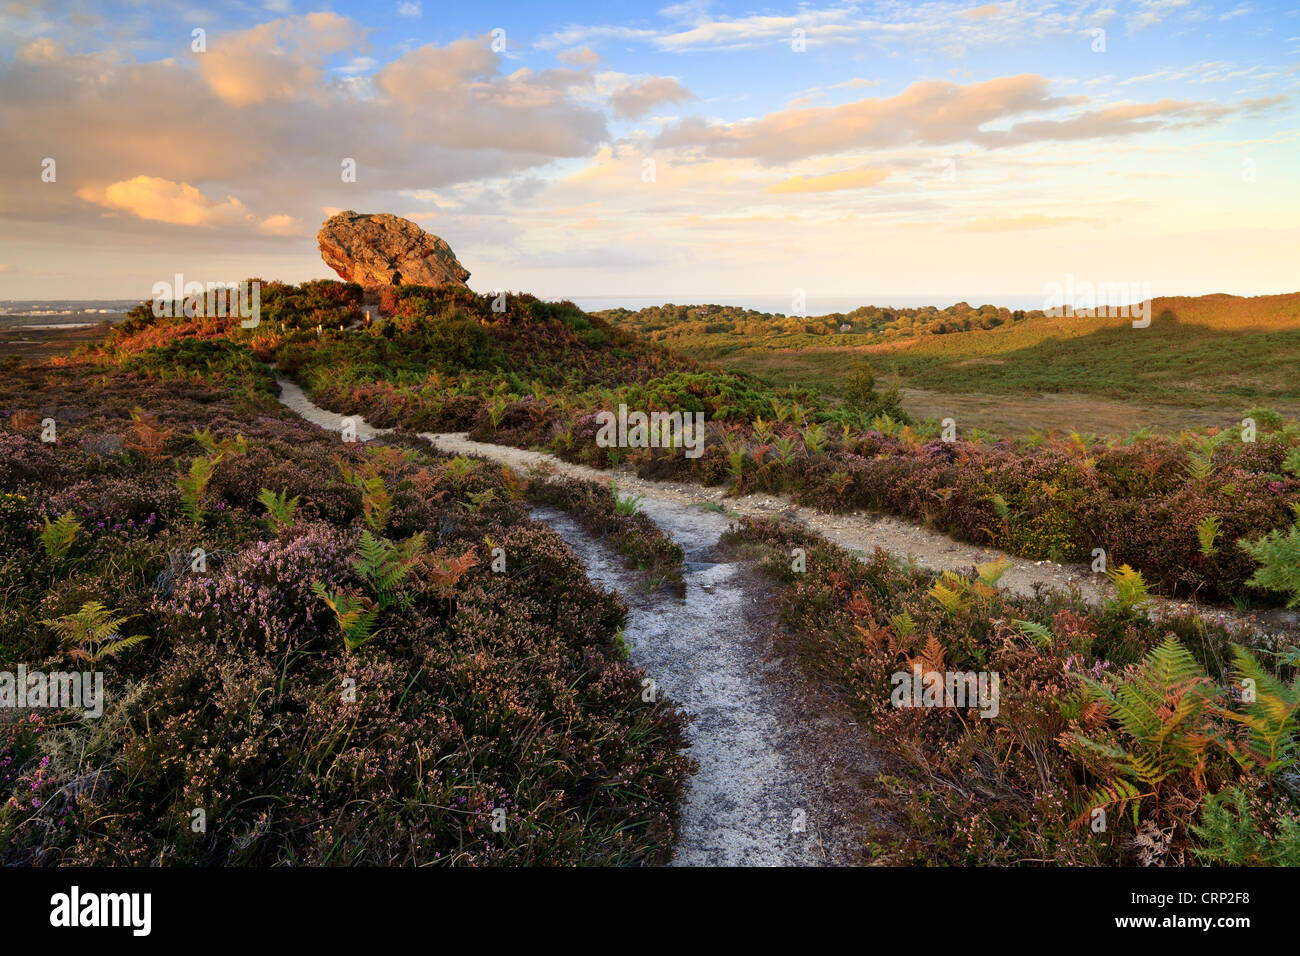 Evening light at Agglestone Rock, a large sandstone rock on Studland Heath. - Stock Image